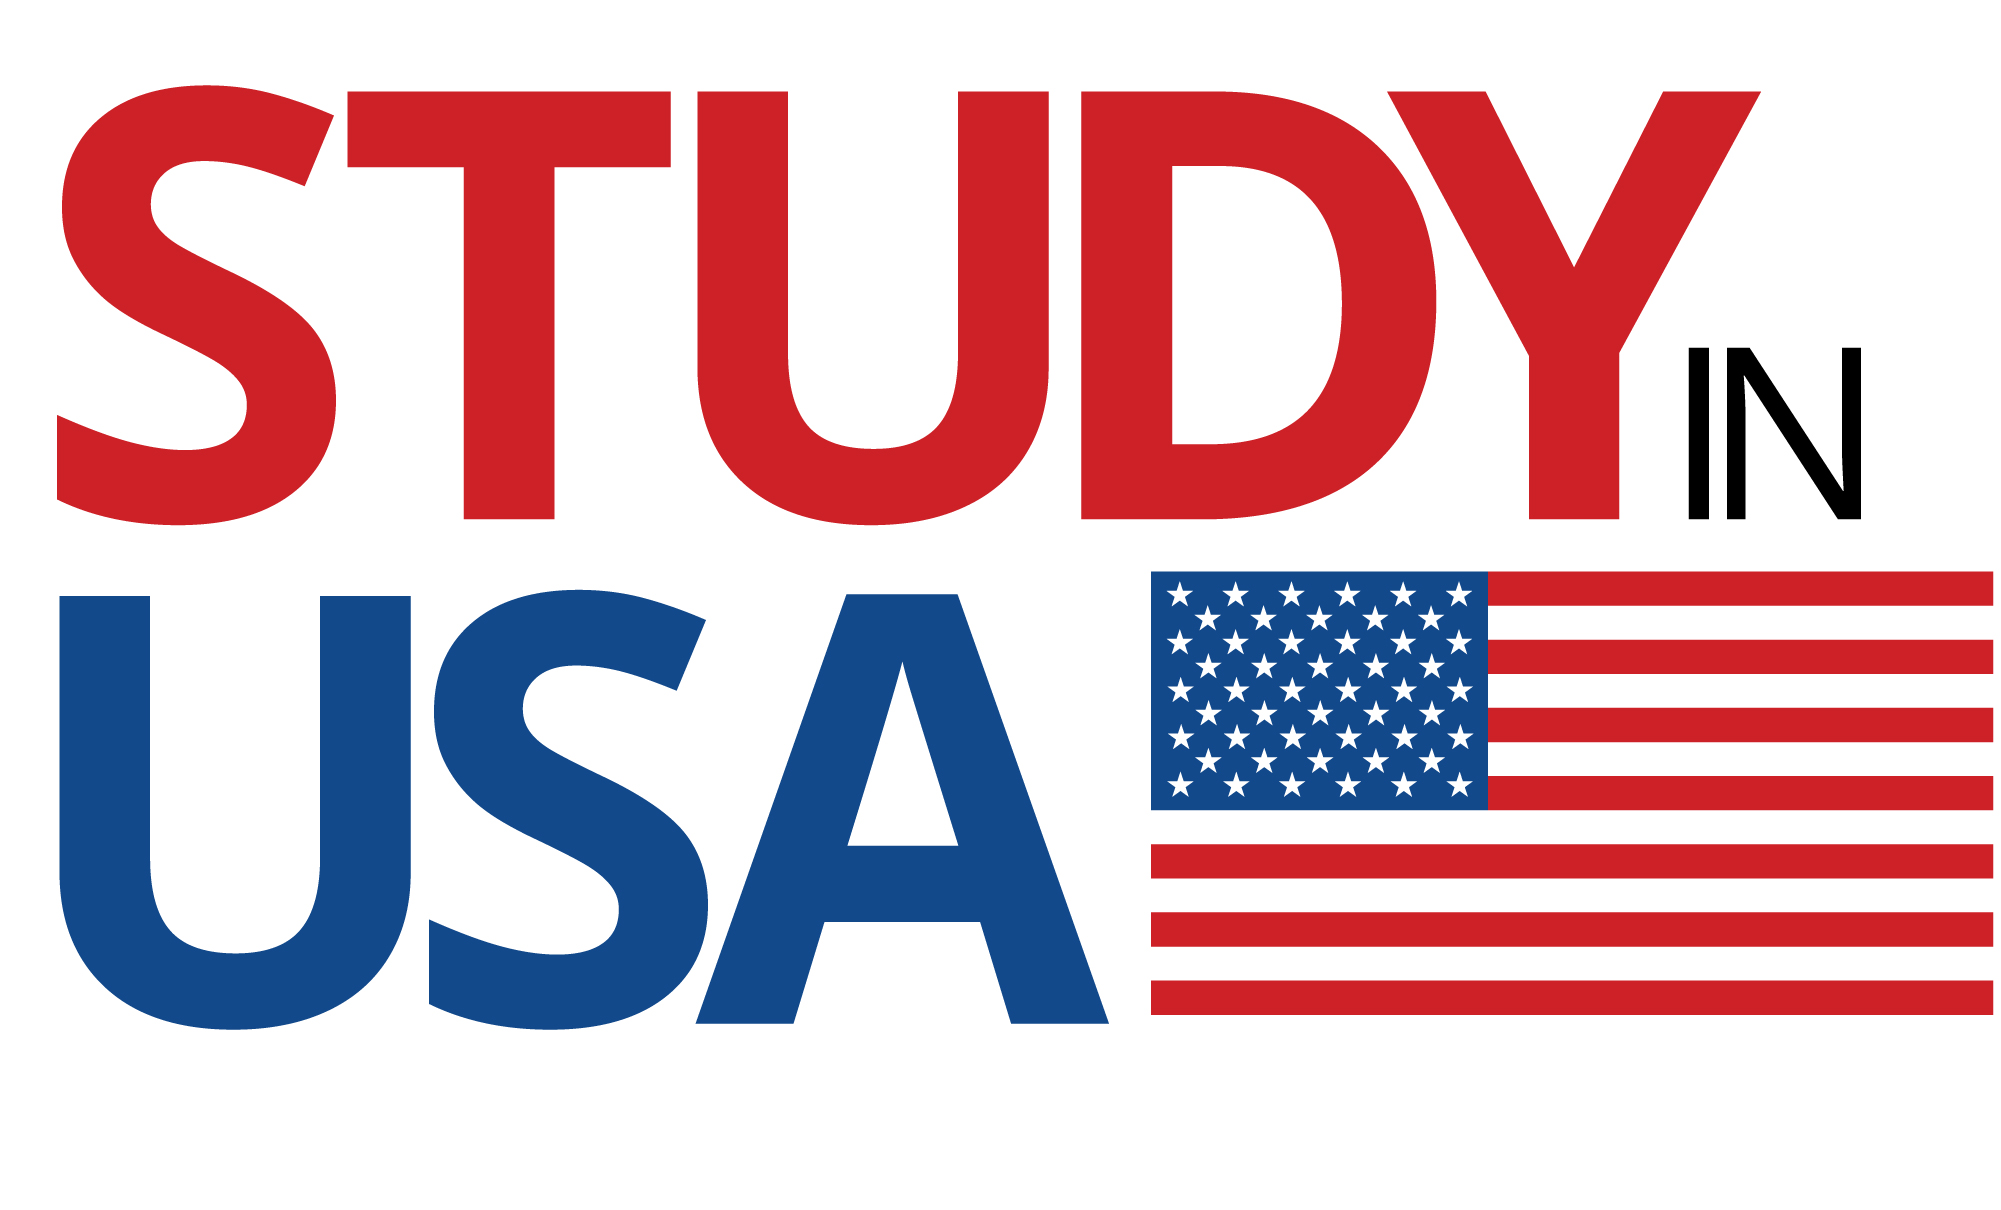 the study and definition of sociology and the education system in the united states The united states participated in timss advanced in 1995 and 2015 timss is sponsored by the international association for the evaluation of educational achievement (iea) and conducted in the united states by the national center for education statistics (nces.